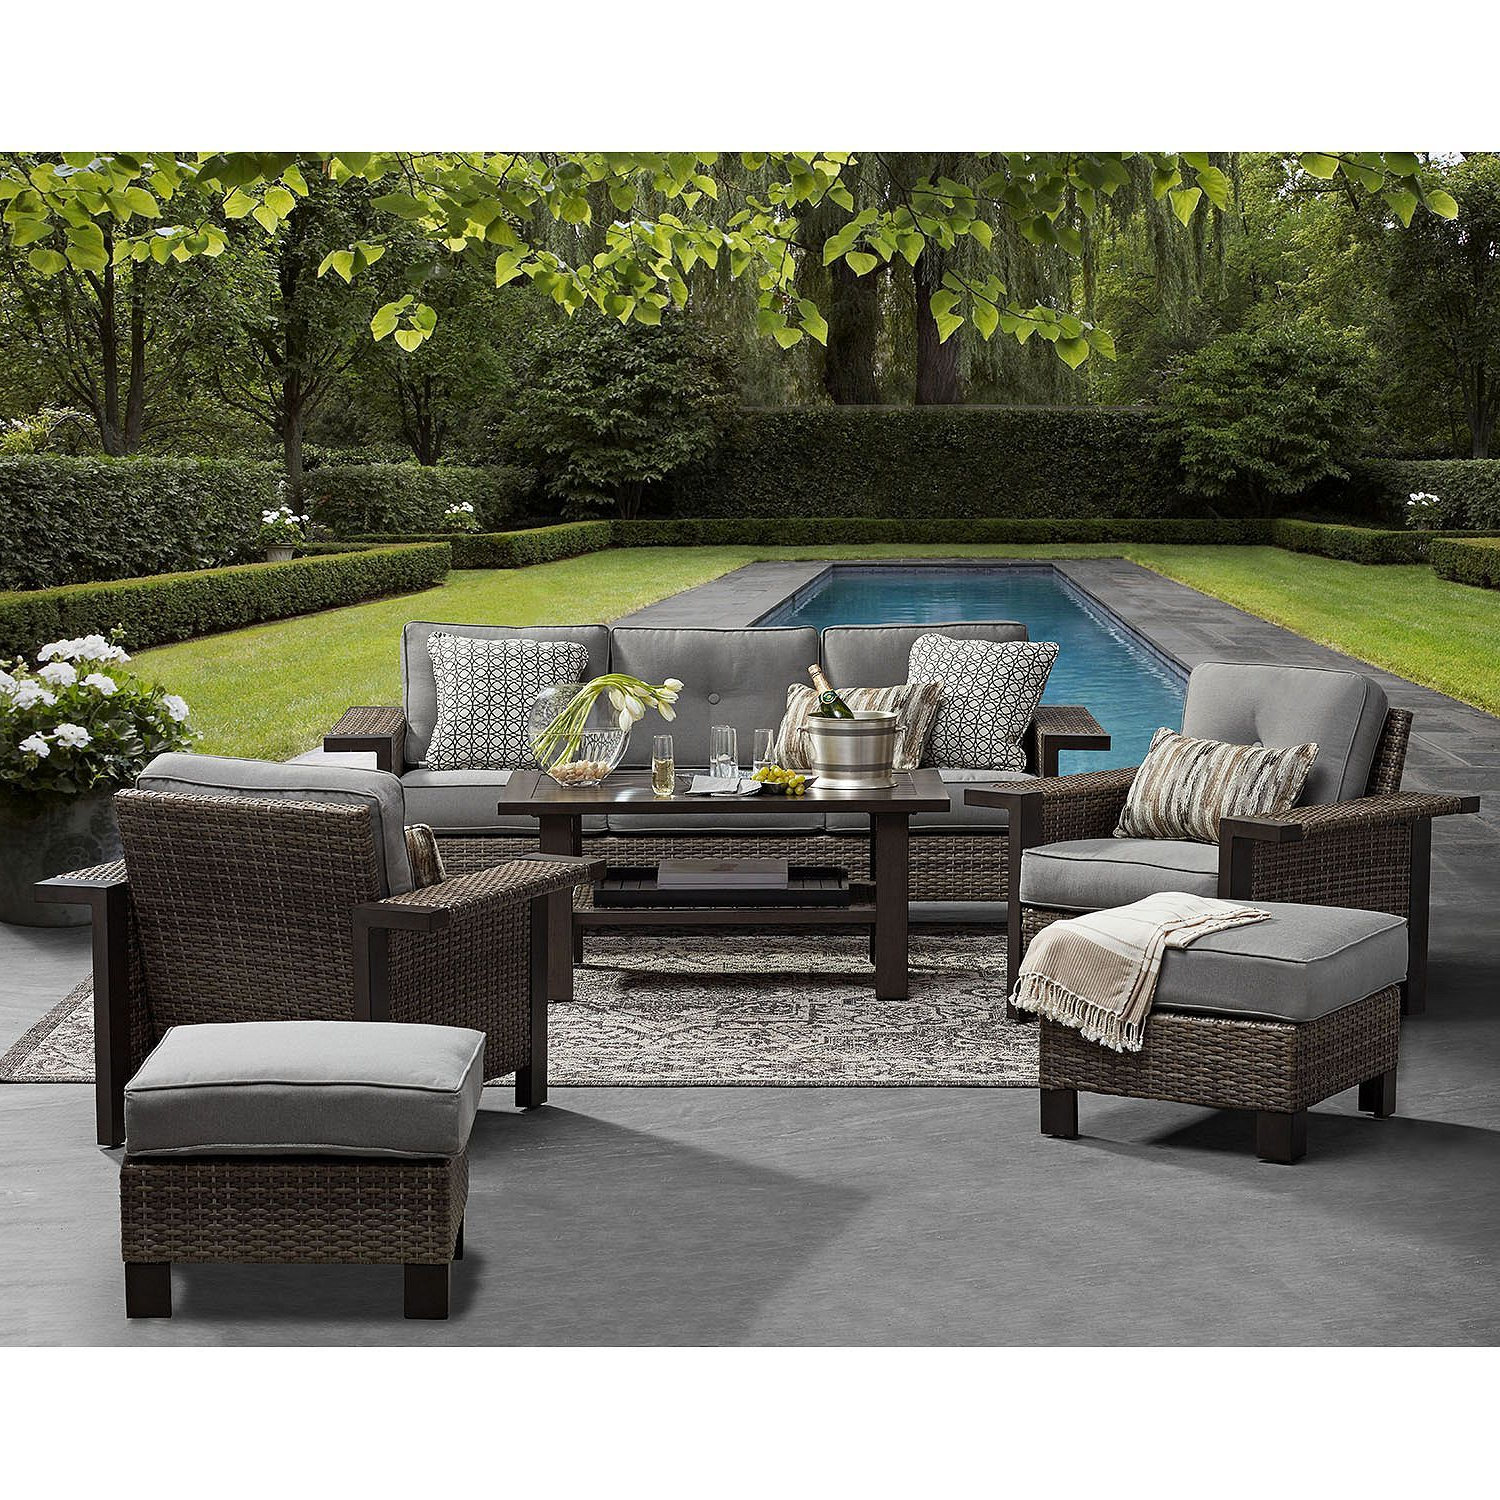 Favorite Avadi Outdoor Sofas & Ottomans 3 Piece Set With Regard To Member's Mark Agio Manchester 6 Piece Patio Deep Seating Set (View 18 of 25)